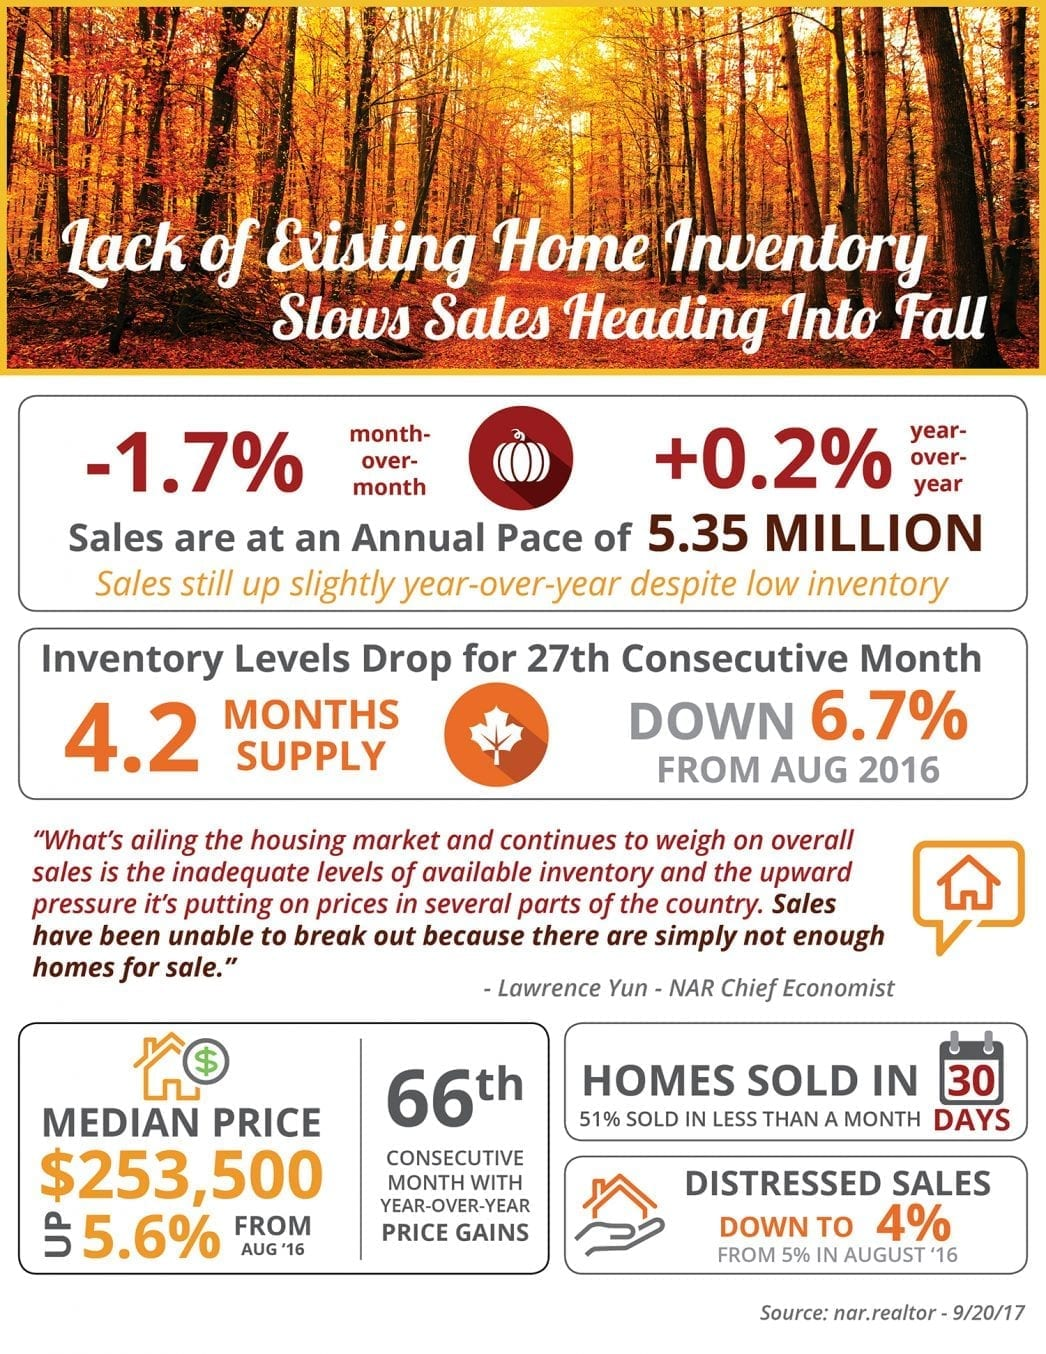 Fall Inventory Slows